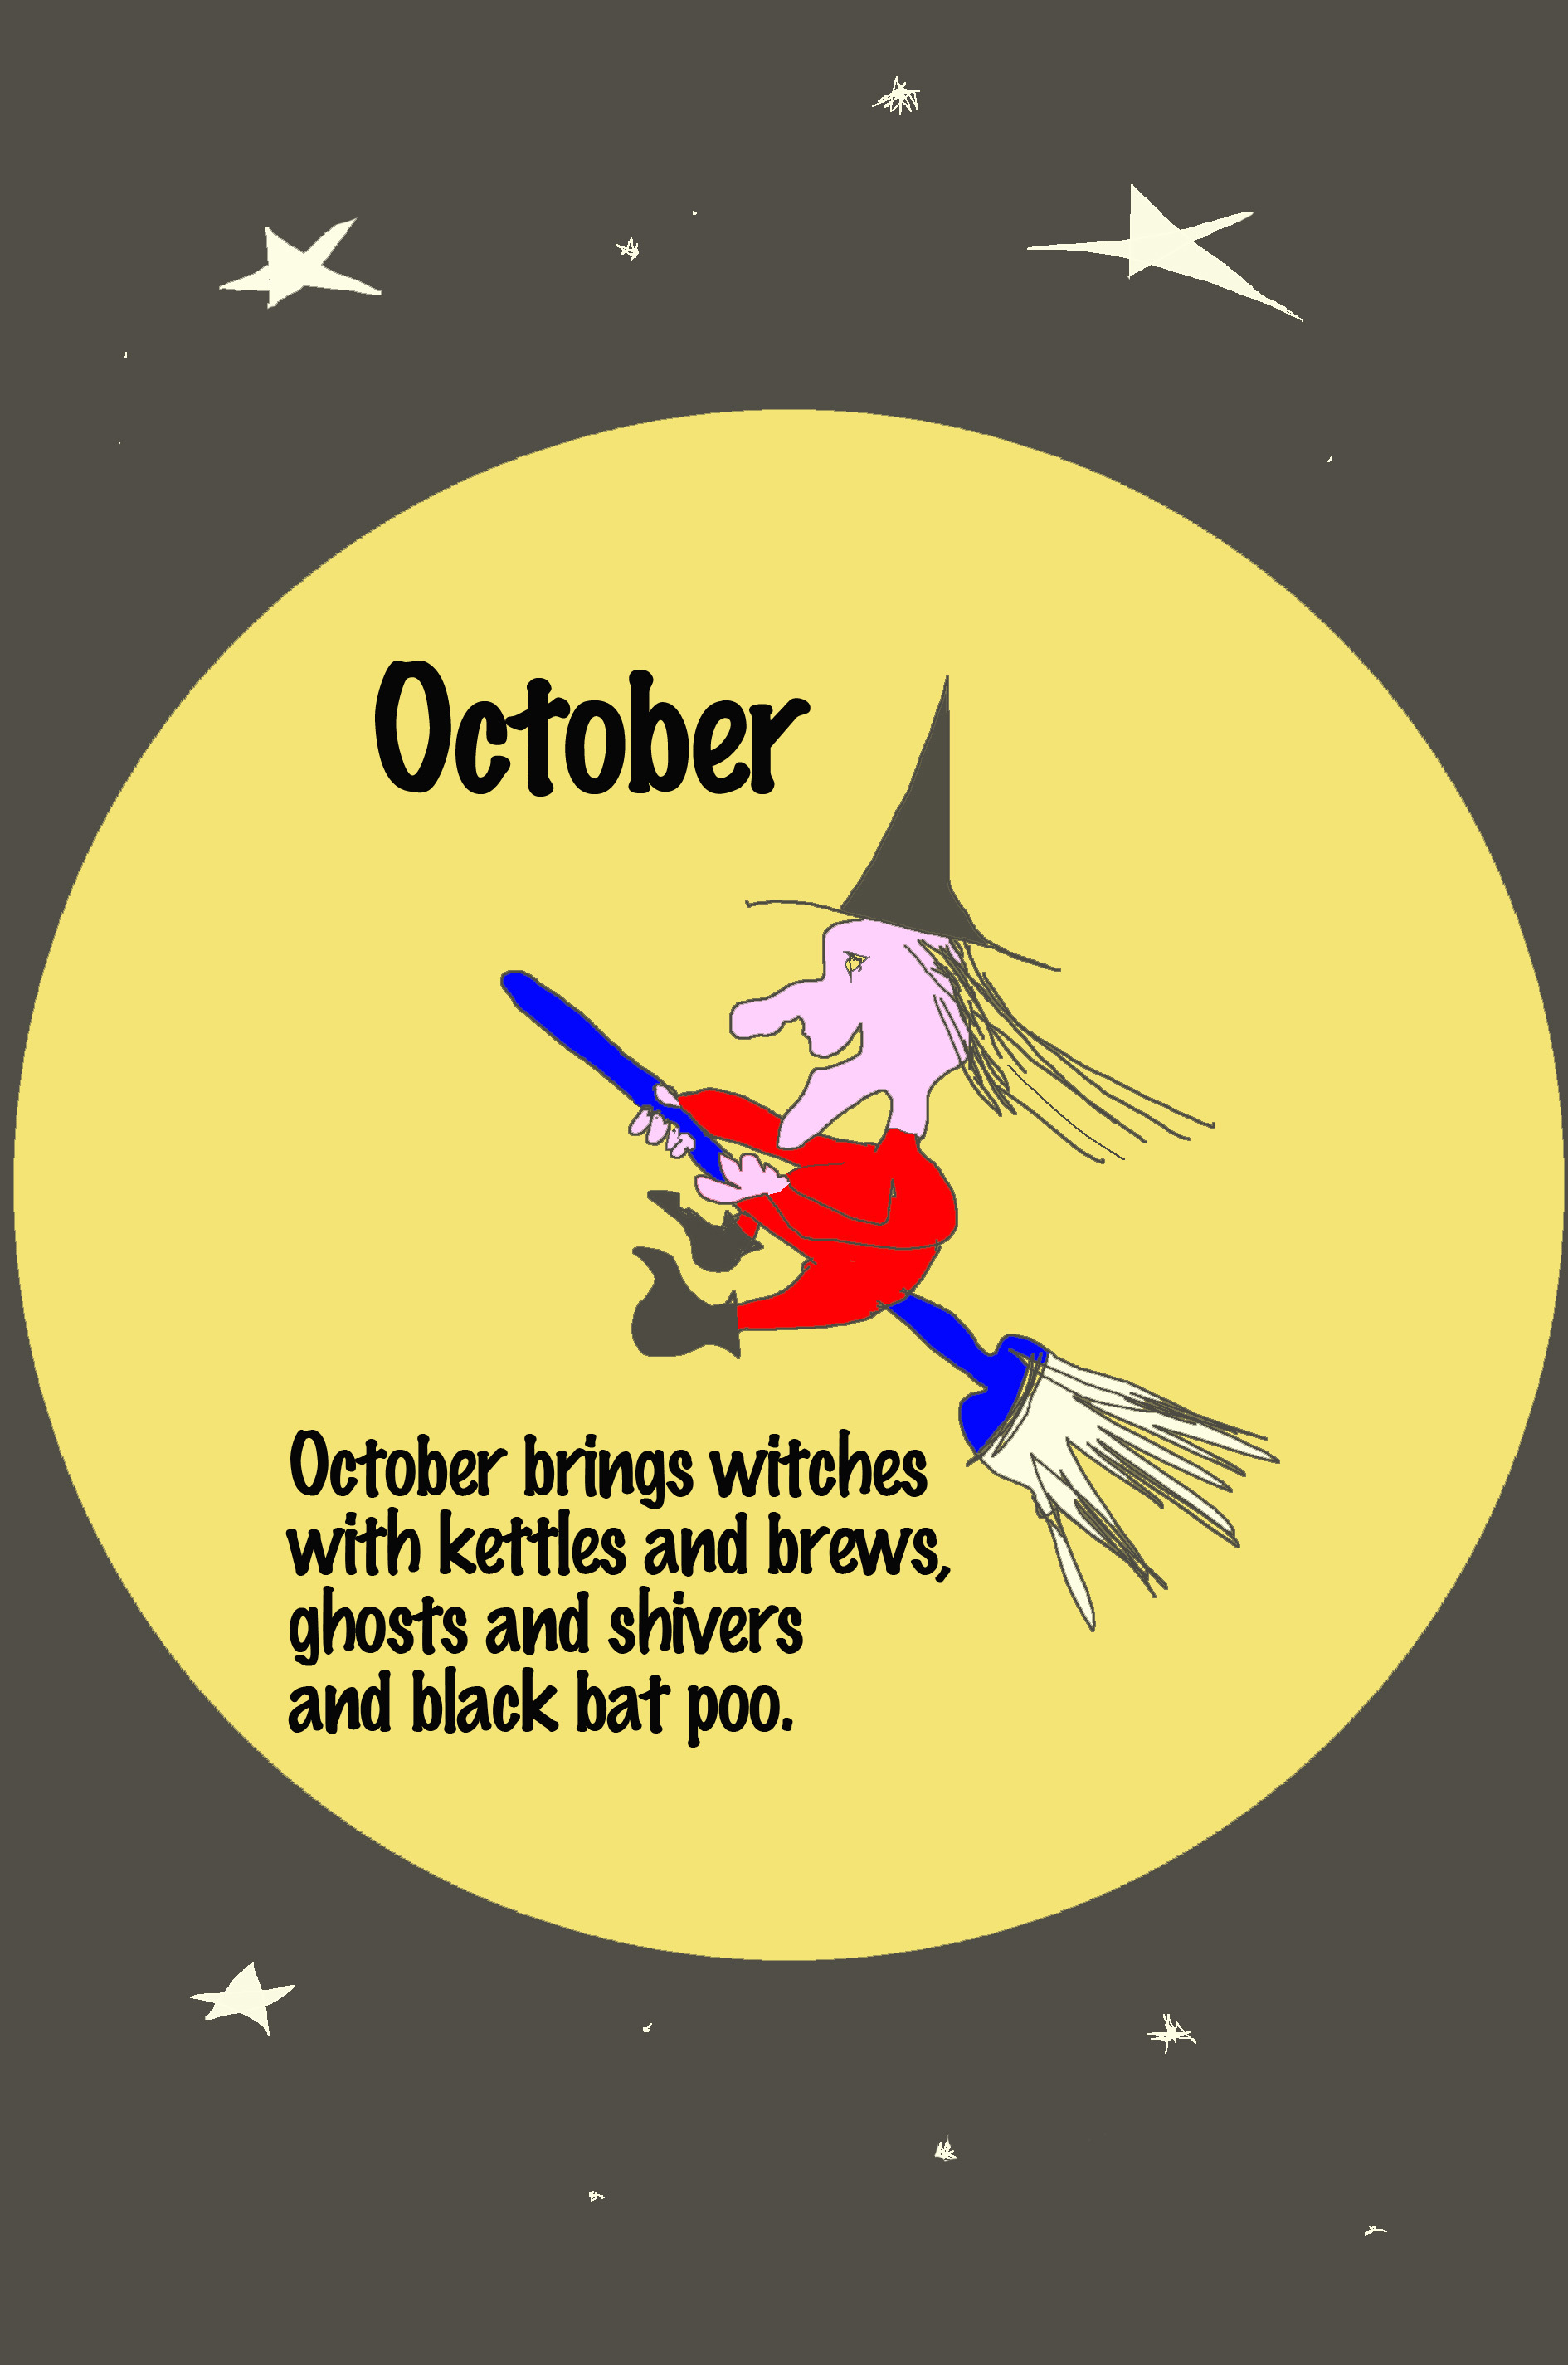 Witch illustration by Michigan author and artist Richard Rensberry for kid's book Twelve Months Make A Year.